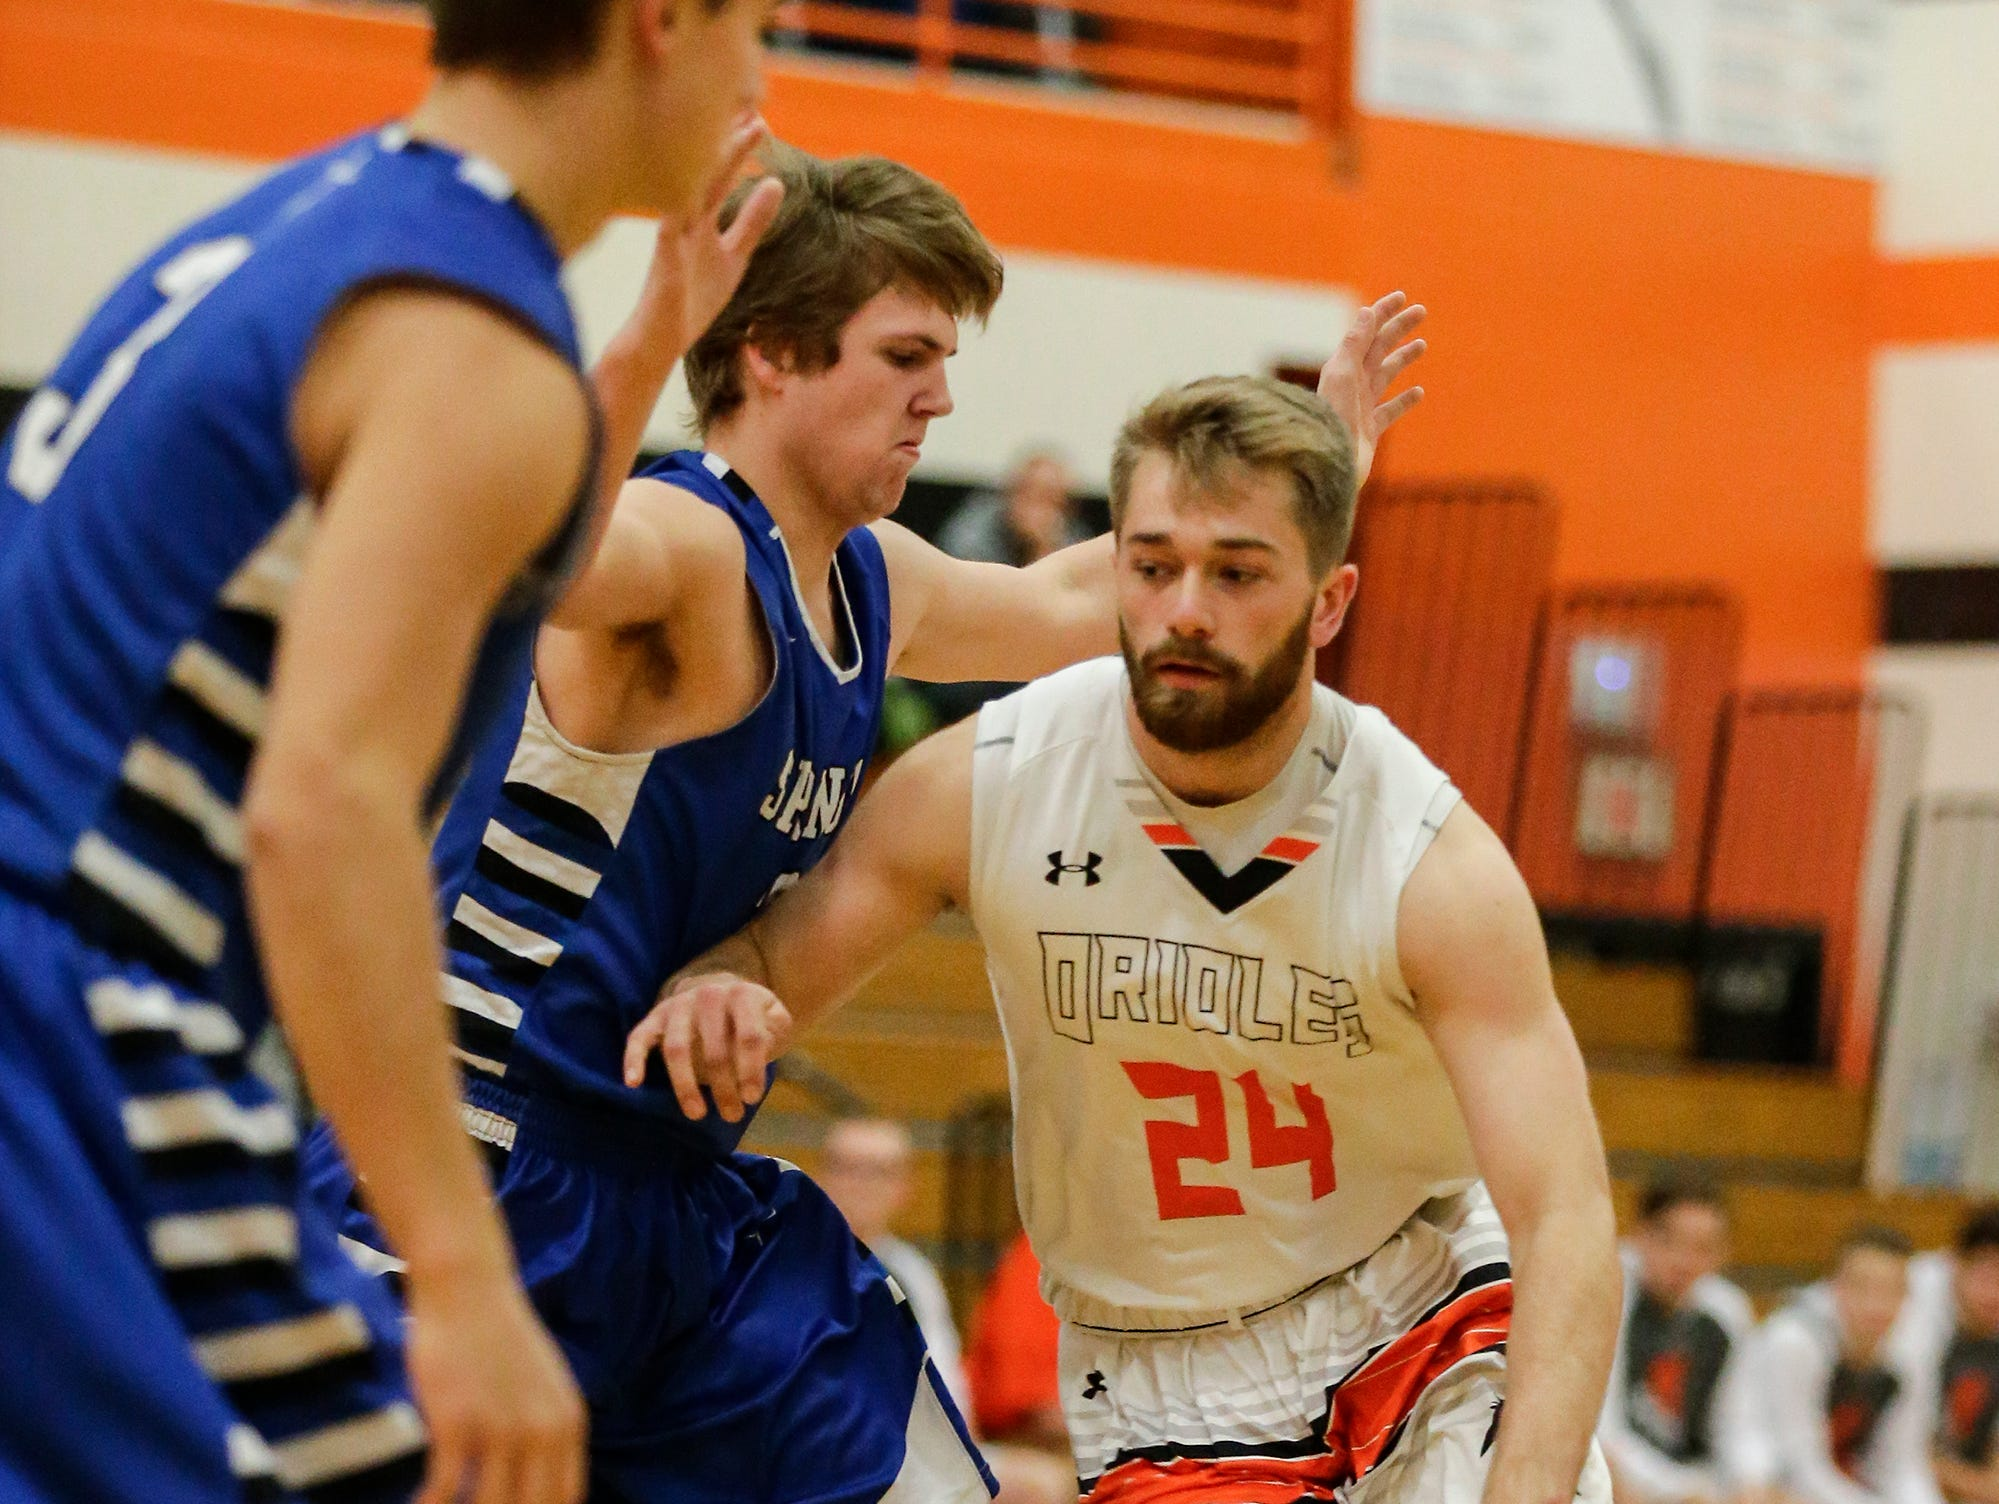 North Fond du Lac High School boys basketball's Alex Zander works his way past St. Mary's Springs Academy's Aiden Ottery during their game Friday, December 7, 2018 in North Fond du Lac, Wisconsin. Doug Raflik/USA TODAY NETWORK-Wisconsin